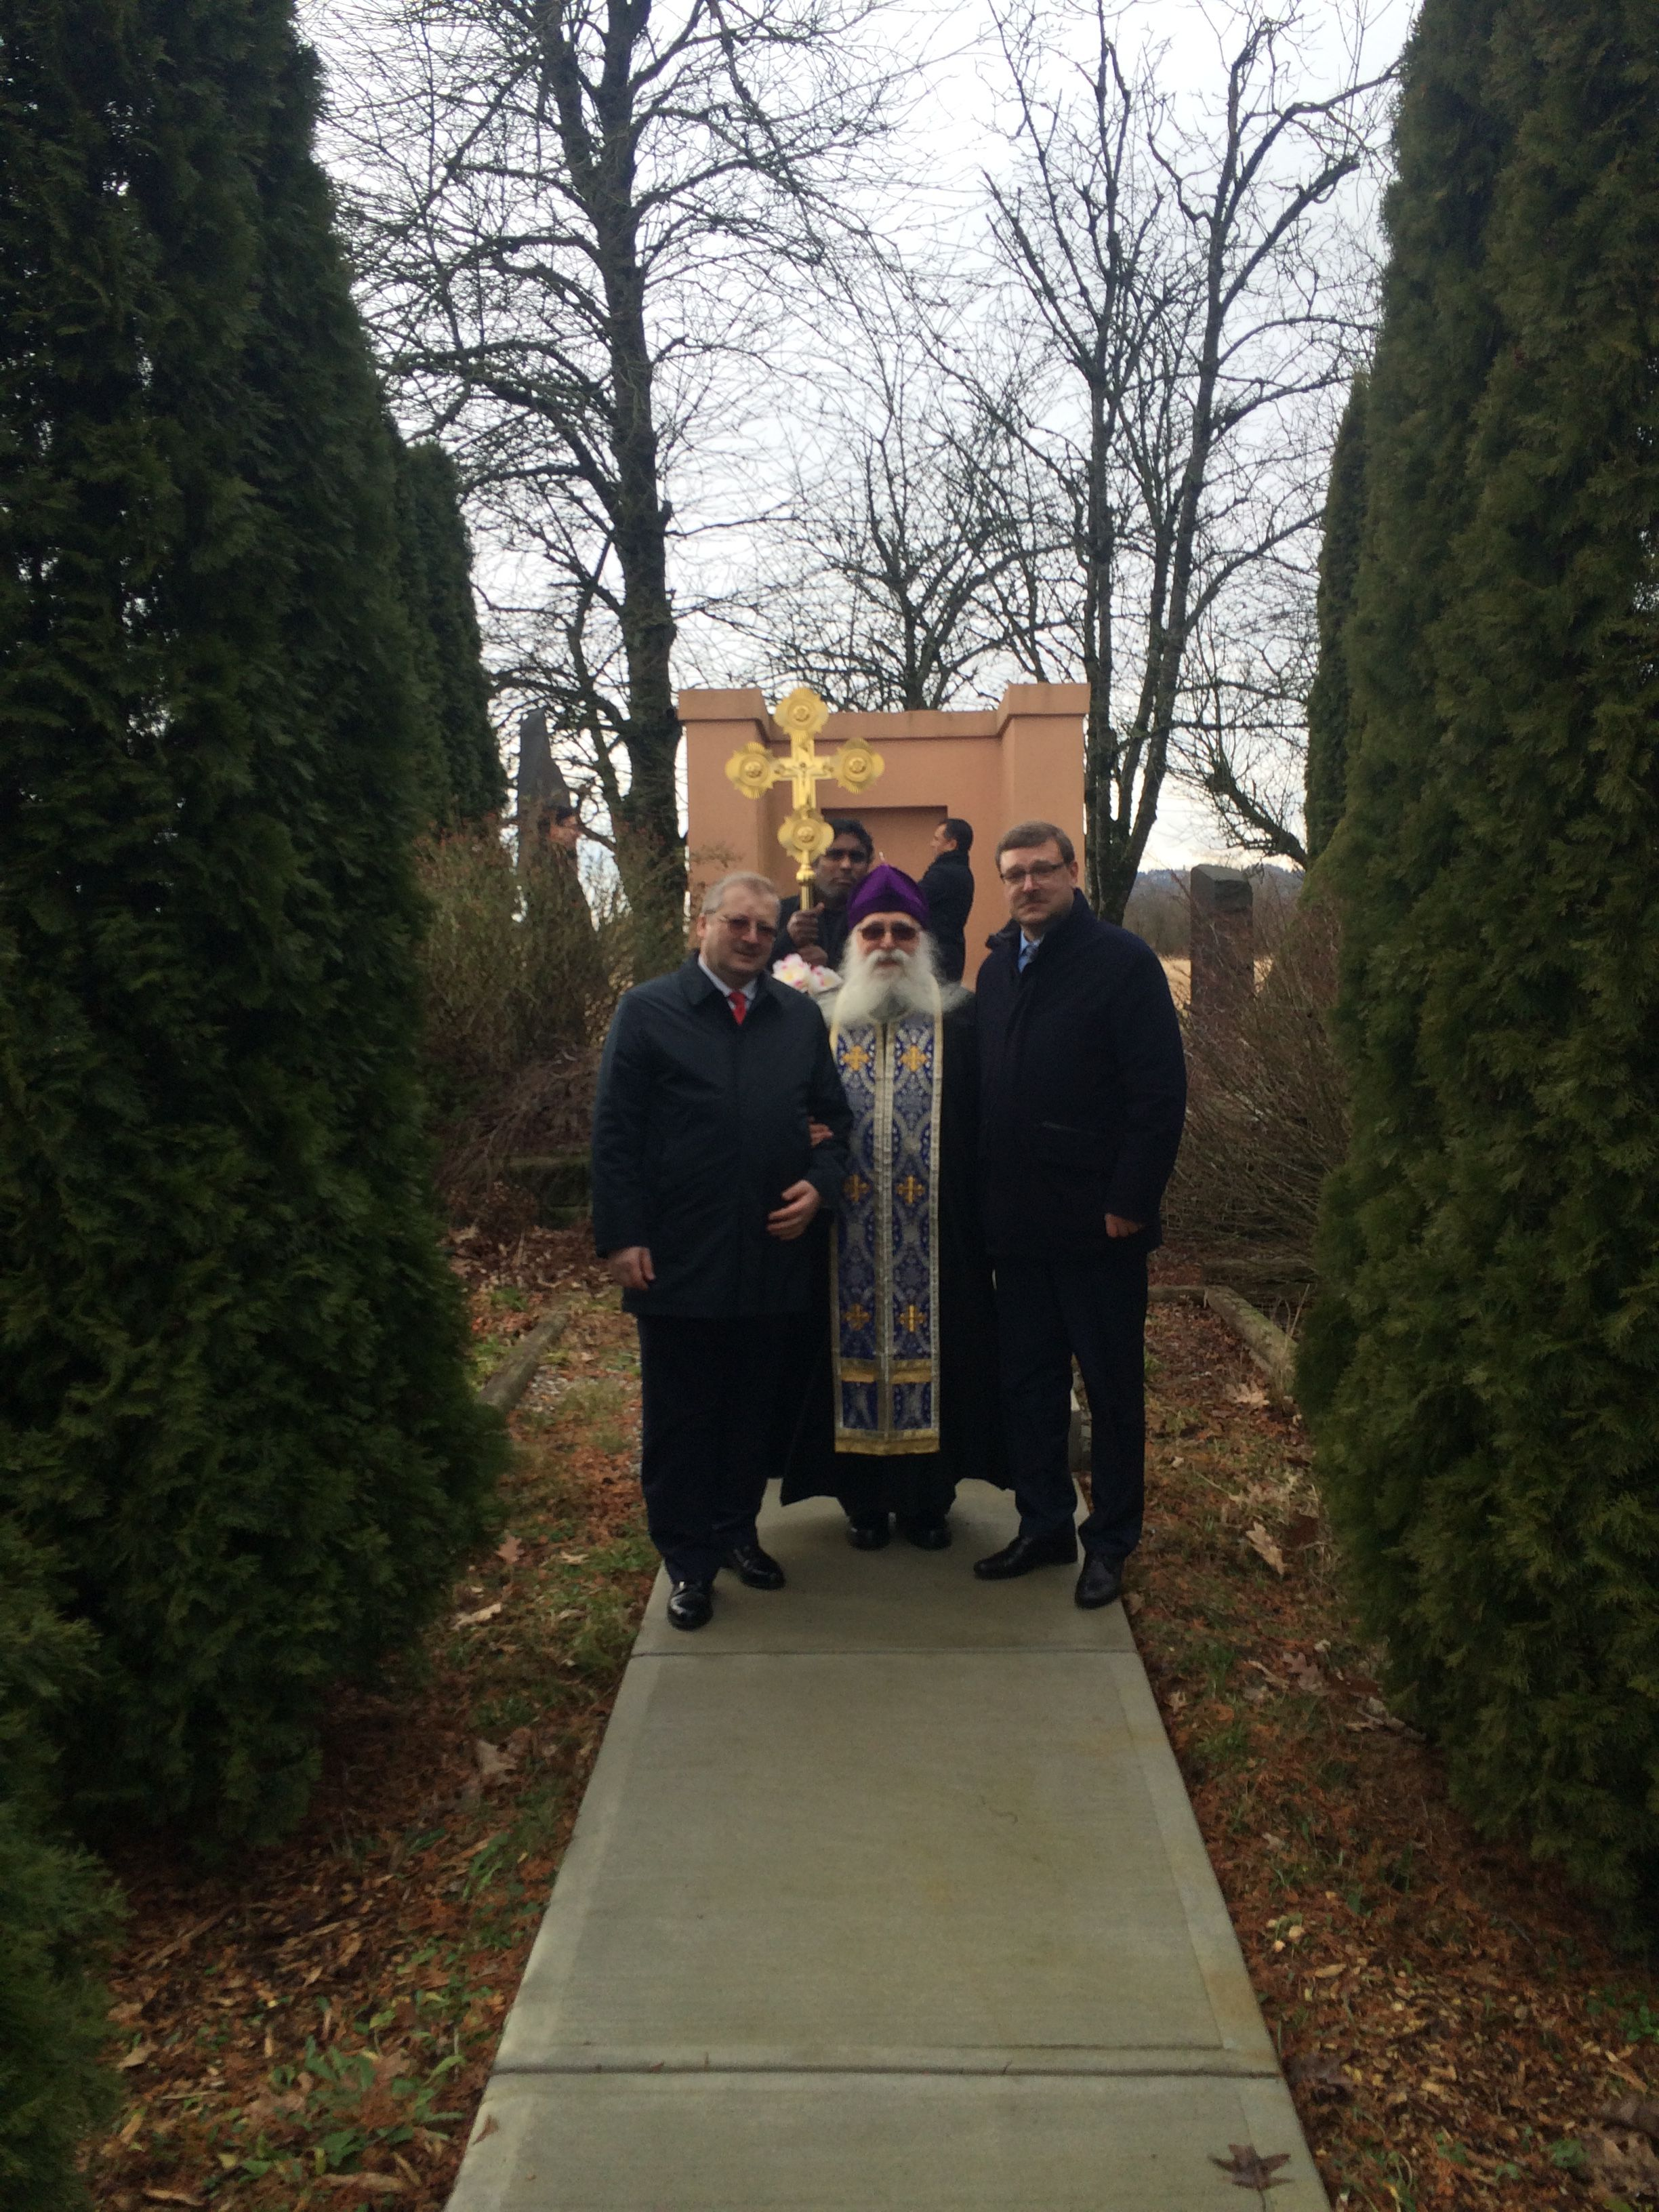 Alexander Darchiev, Russian Ambassador to Canada, Bishop Varlaam, Konstantin Kosachev, Member of the Russian Senate